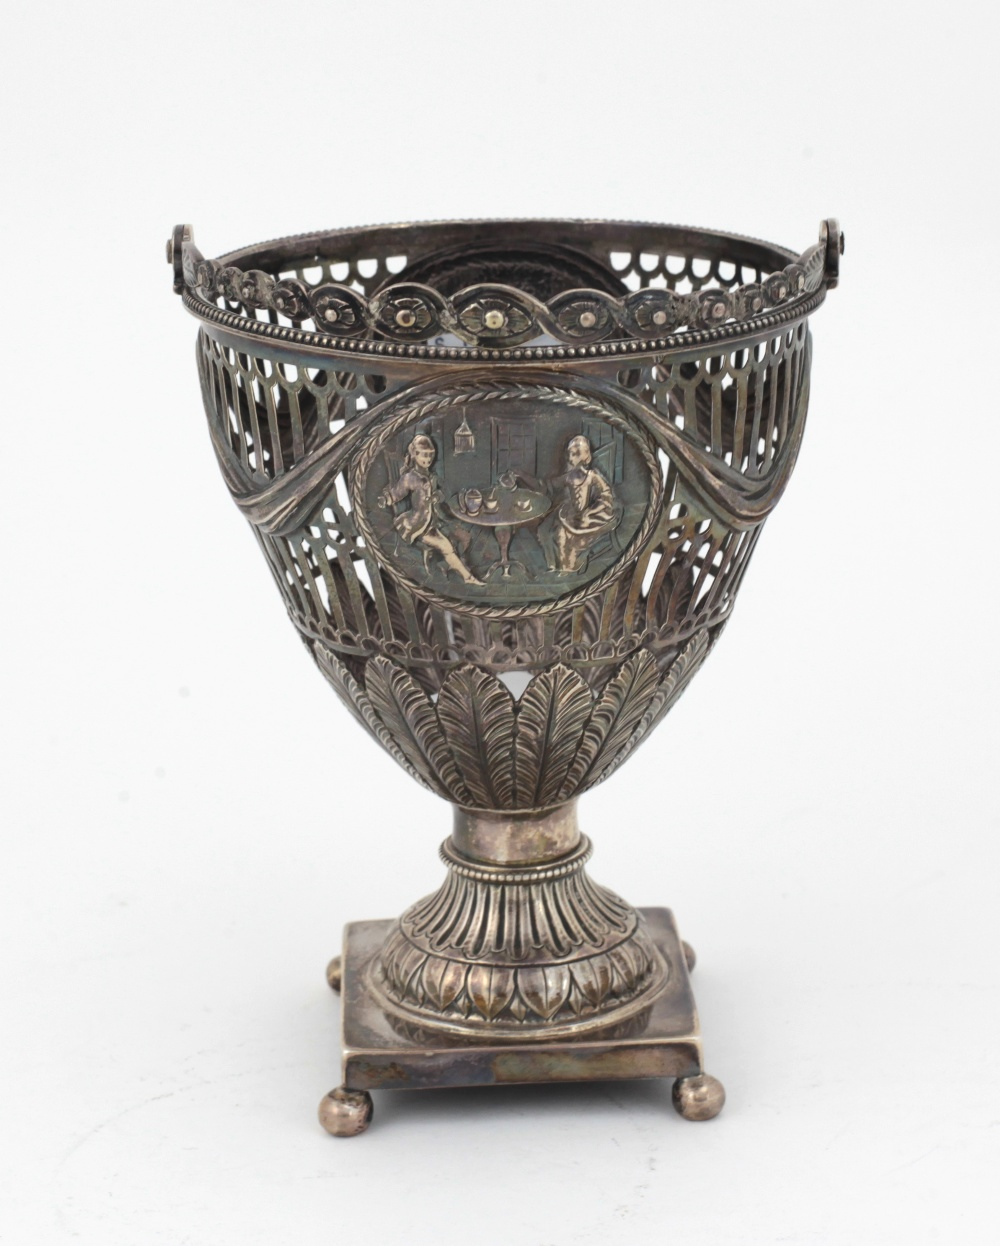 Lot 29 - An attractive 18th Century English pierced silver Urn, decorated in the Adams taste,